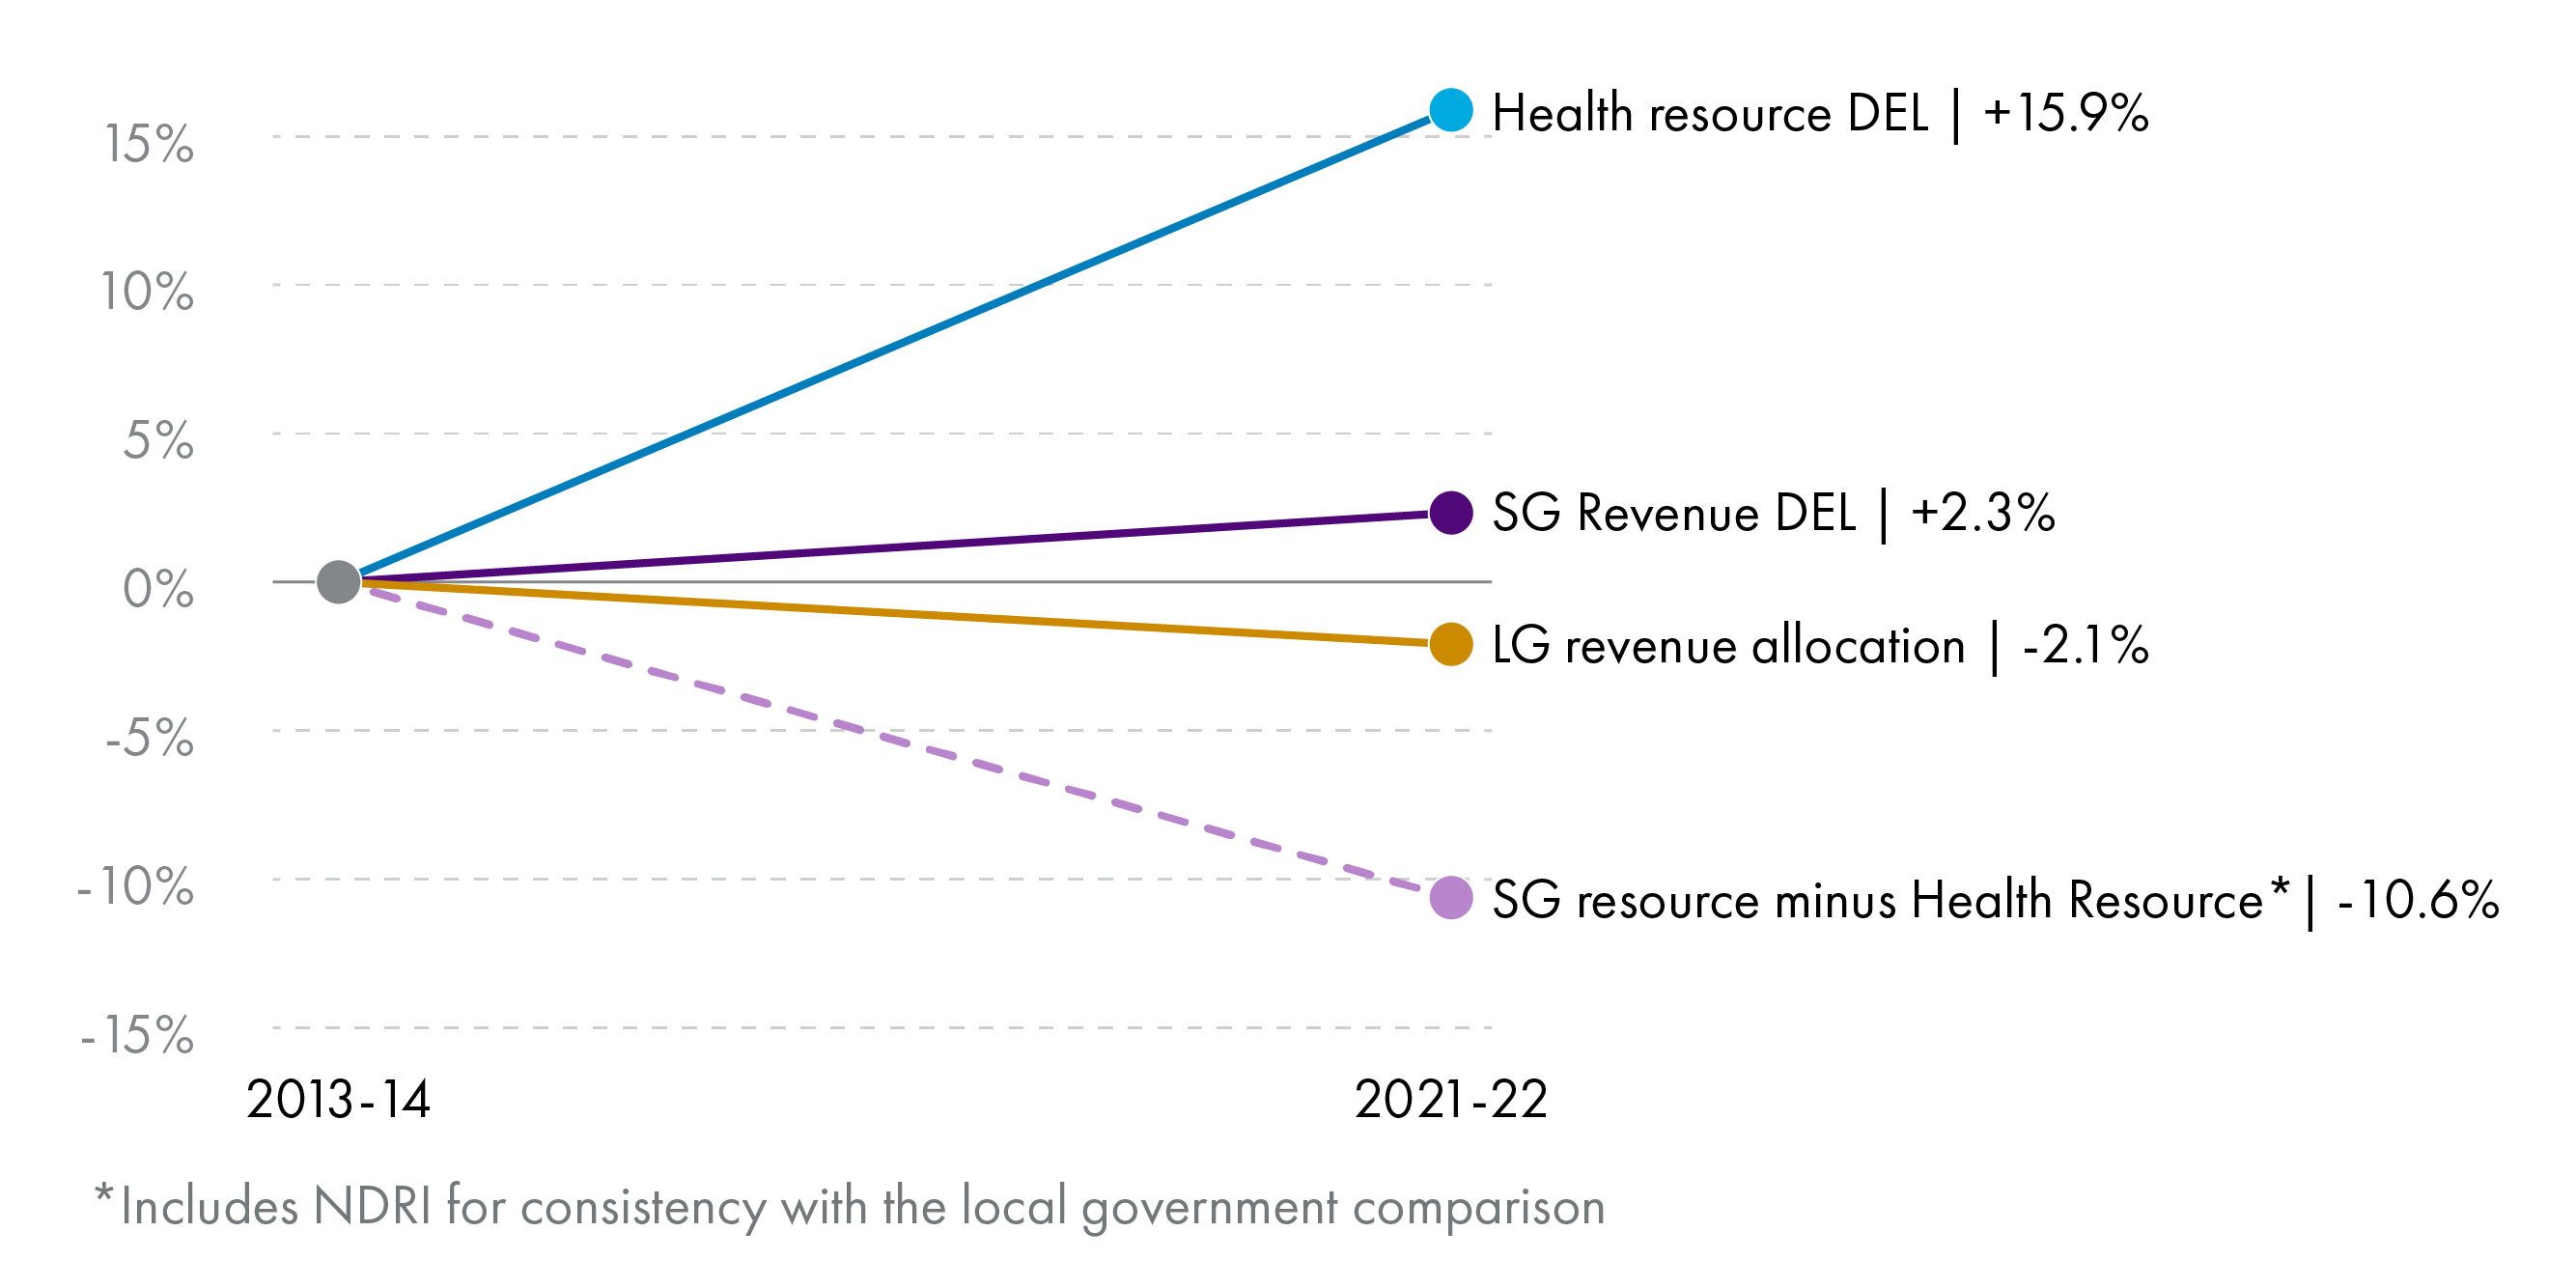 Figure 5– health resource budget increases by 16%, LG resource budget reduces by 2.1% and Scottish Government resource budget minus health reduces by 11%. Real terms changes between 2013-14 and 2021-22.